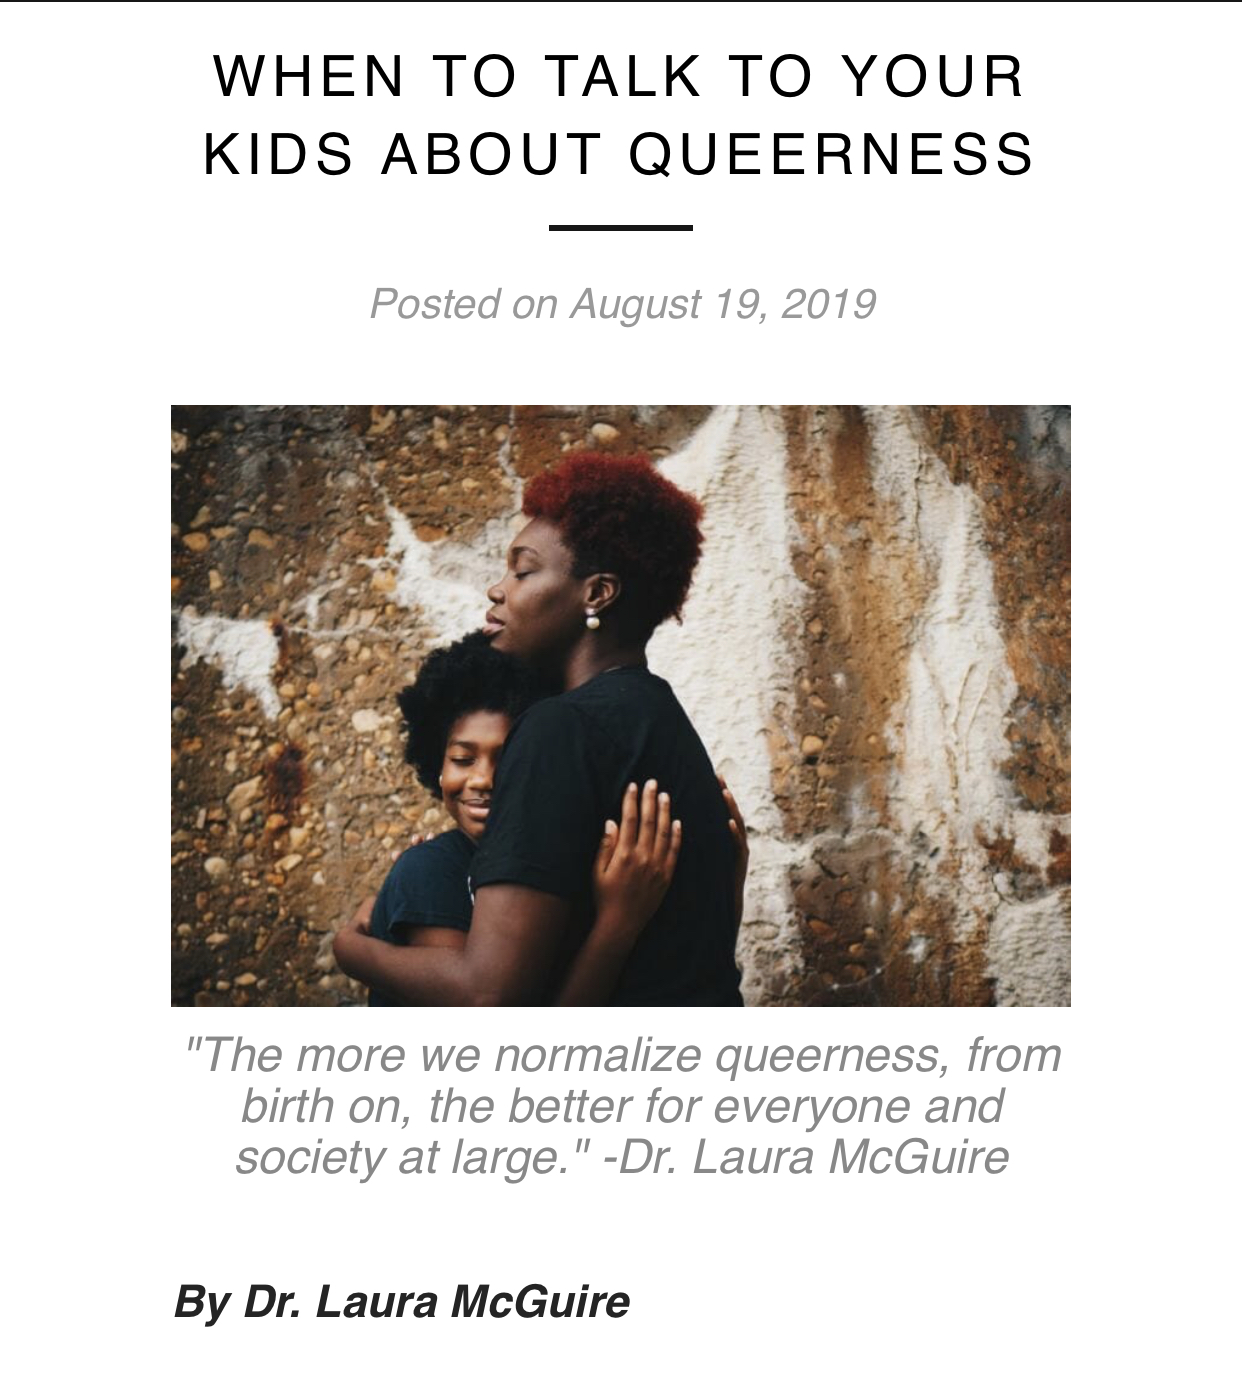 When to talk to kids about Queerness